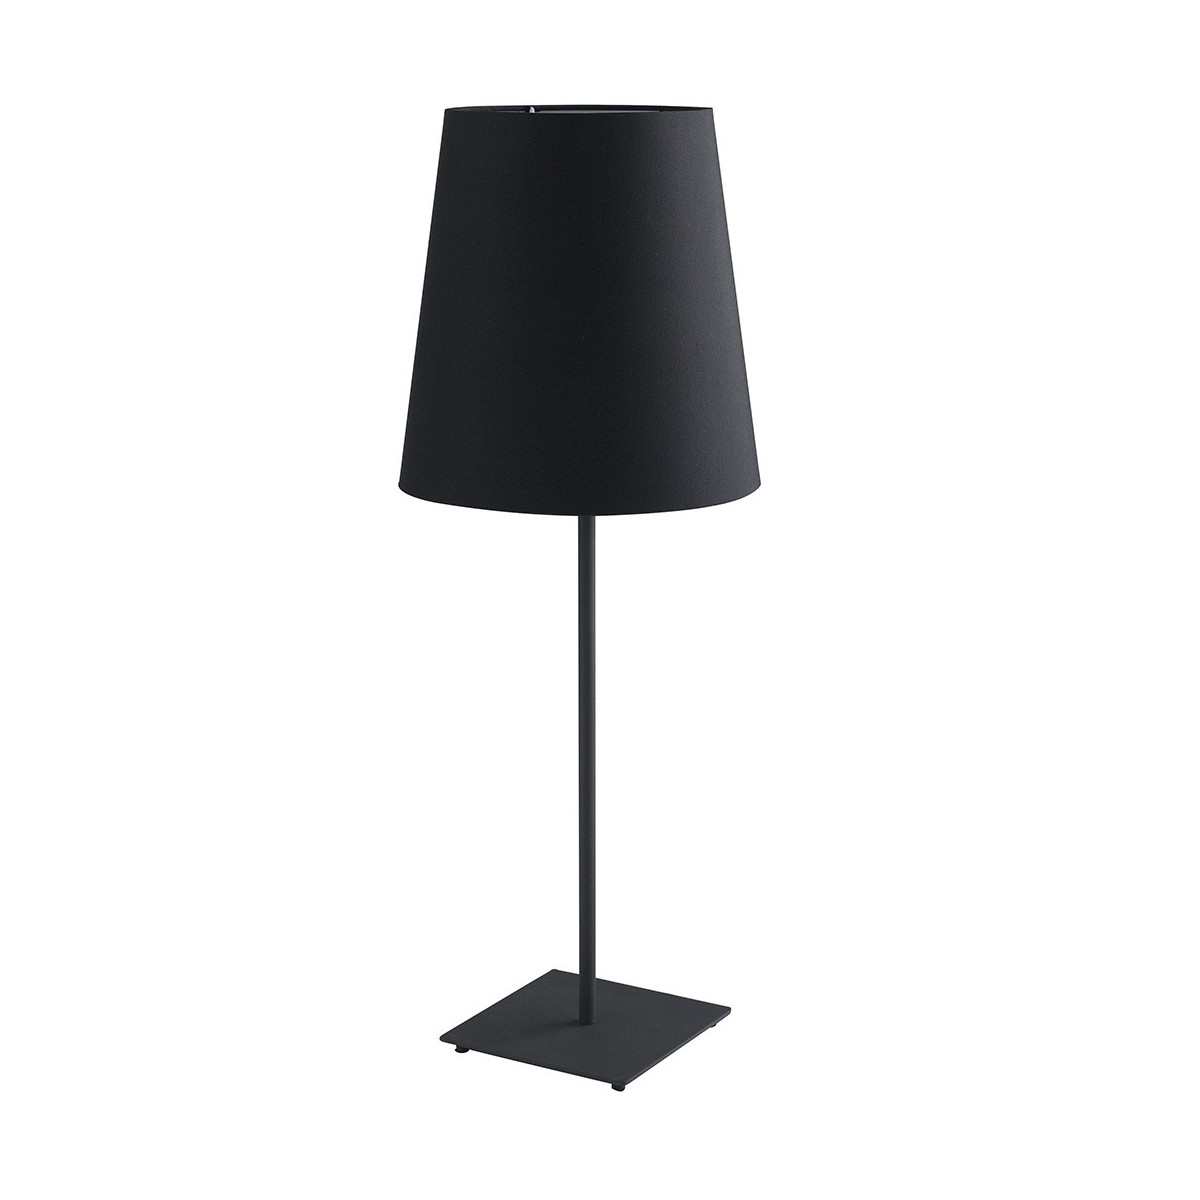 I ELVIS L NER 8031440363716 Fan Europe Lighting Lume nero minimal ELVIS